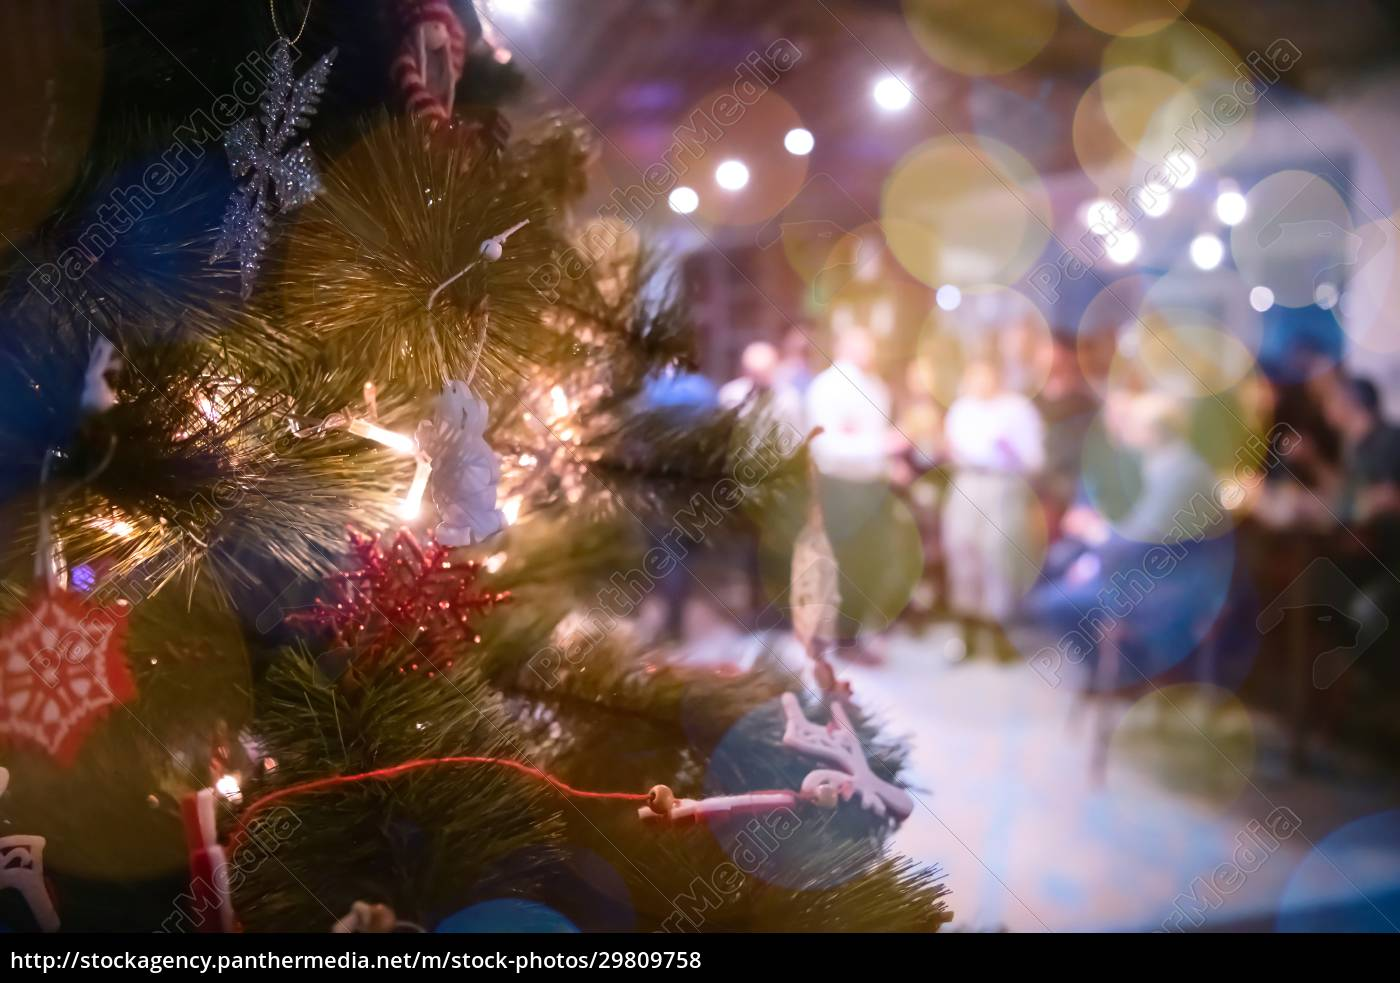 christmass, tree, decorationon, office, party - 29809758